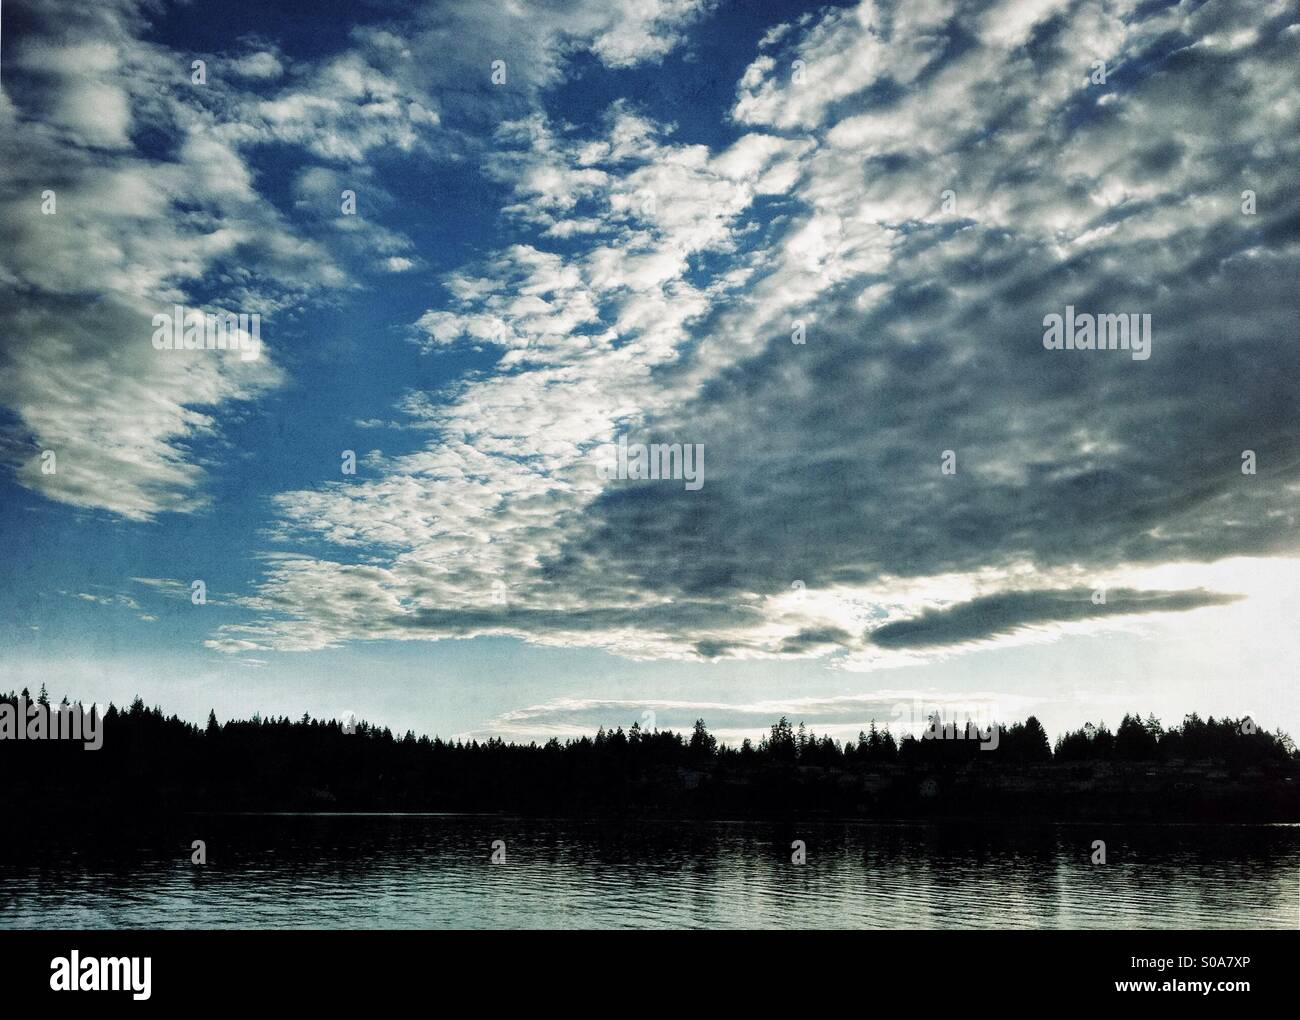 Cloudy sky over evergreen forest and body of water - Stock Image